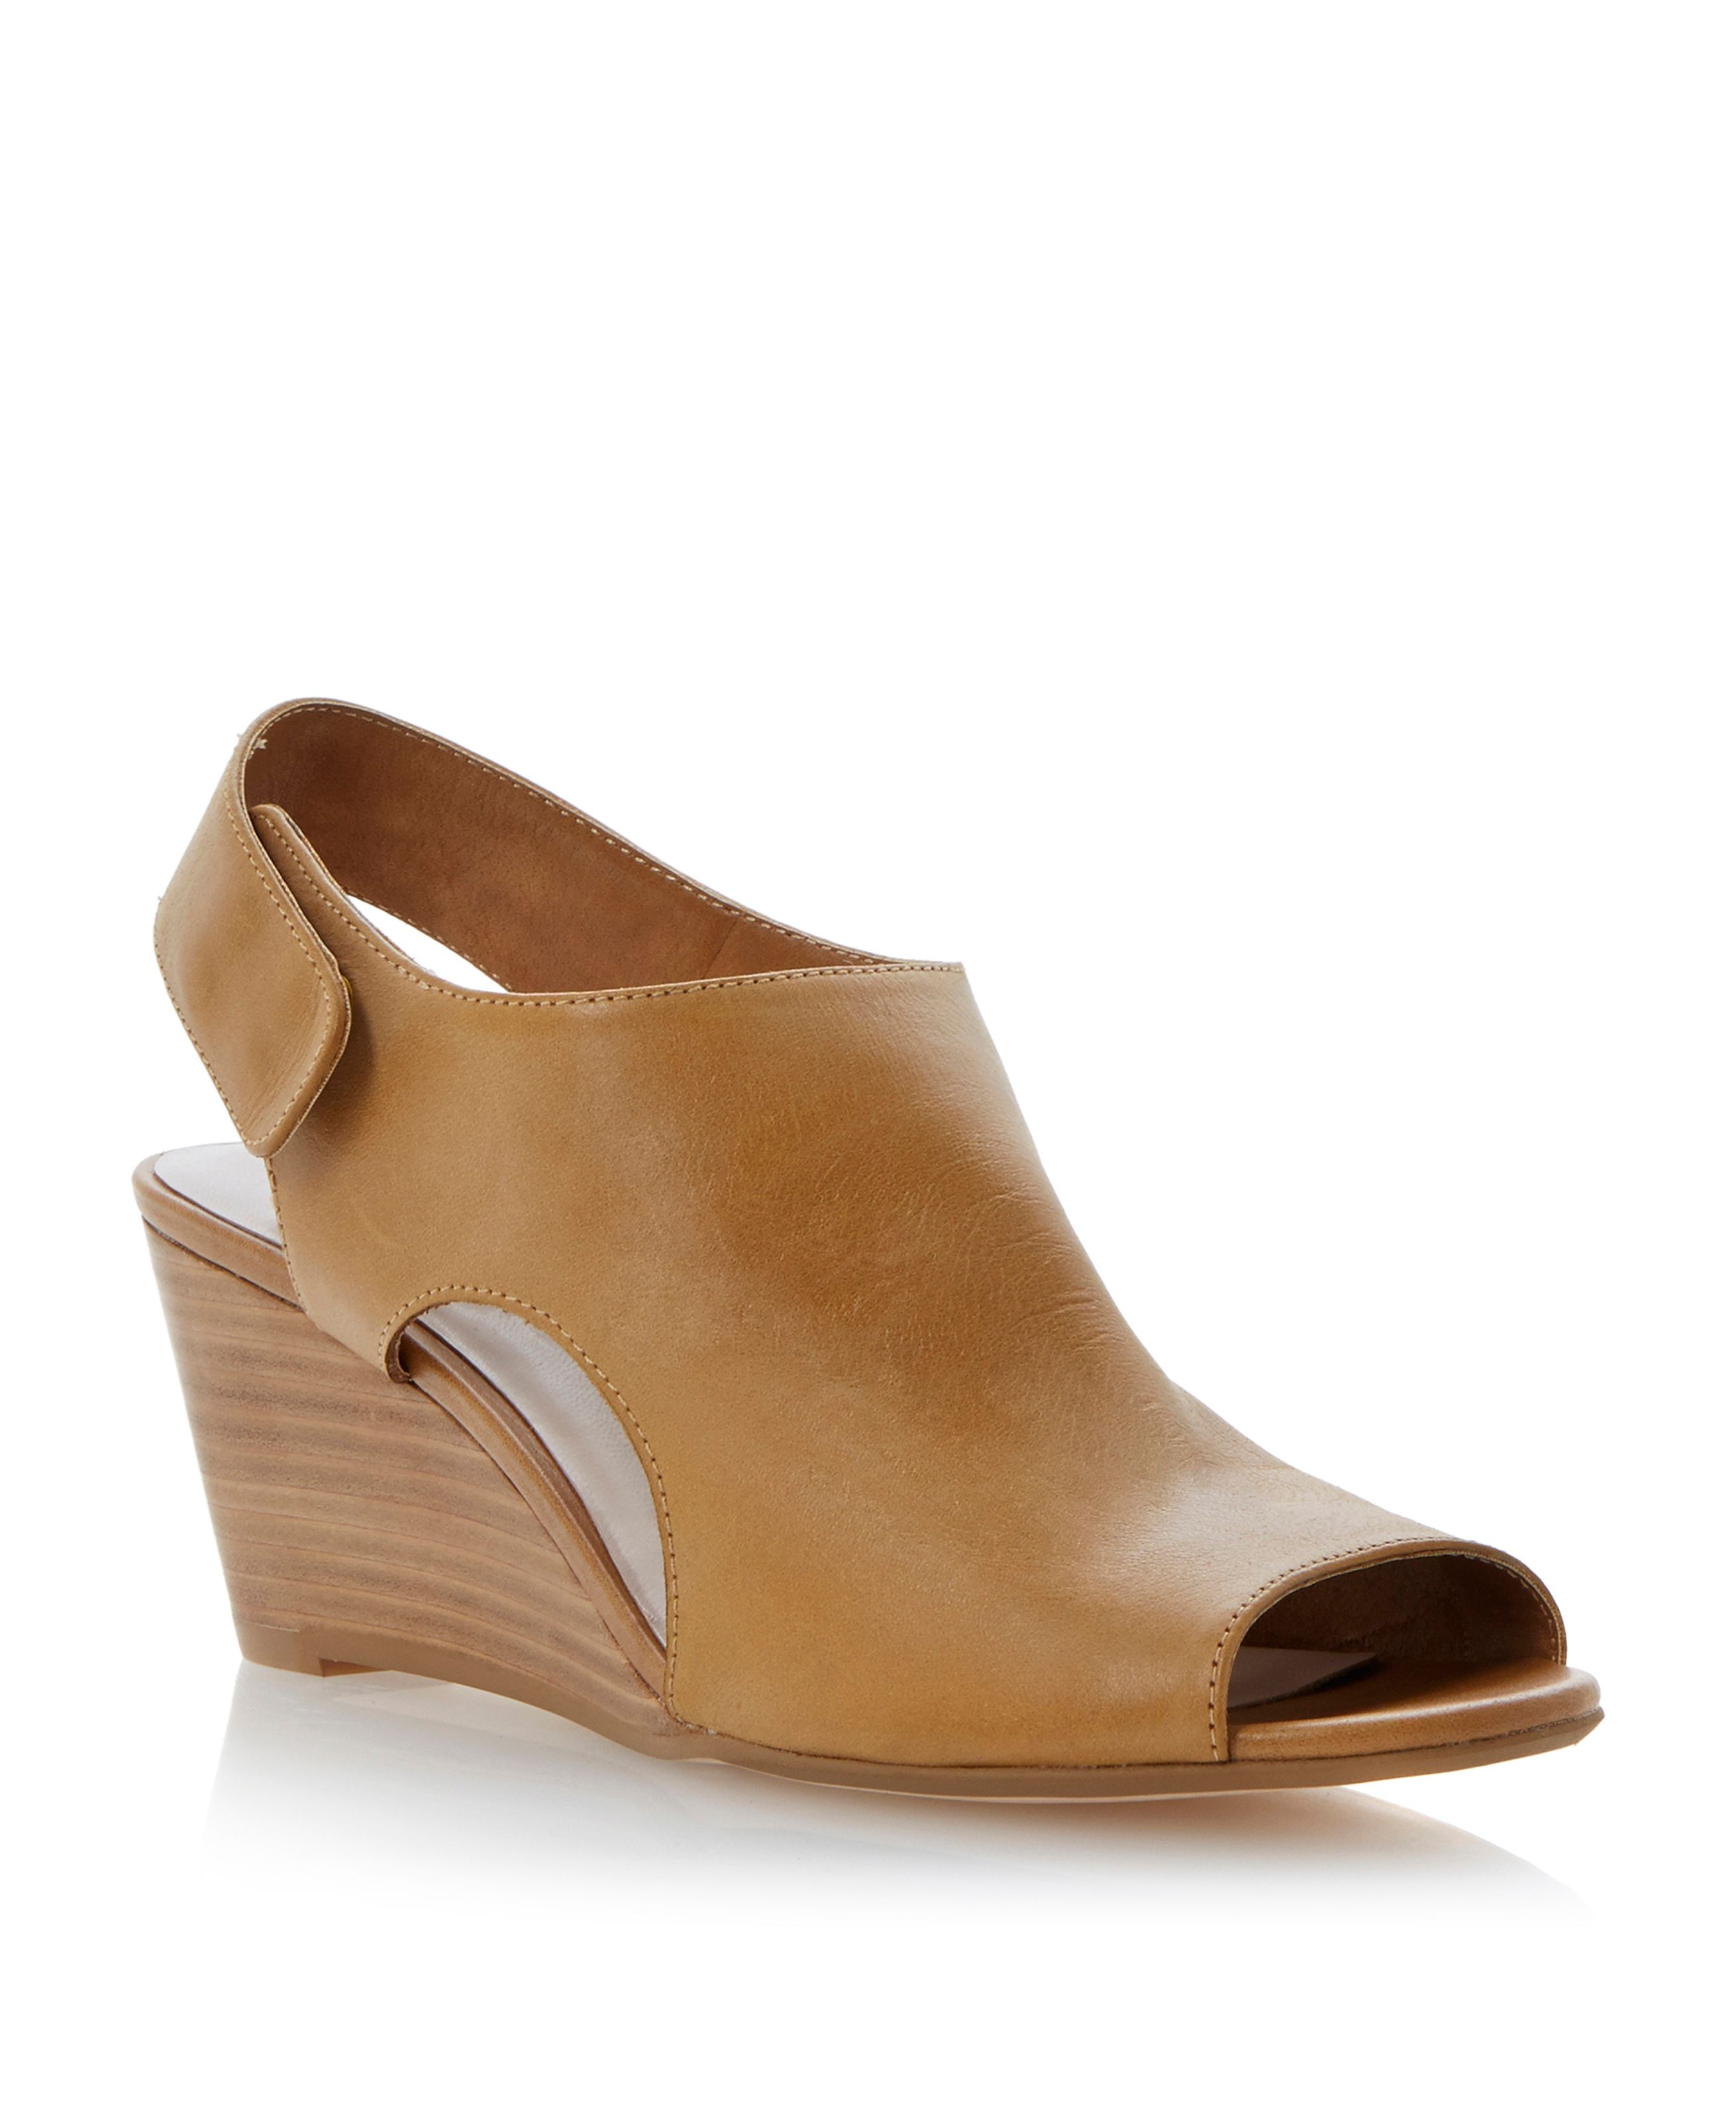 Giana leather wedge peeptoe sandals